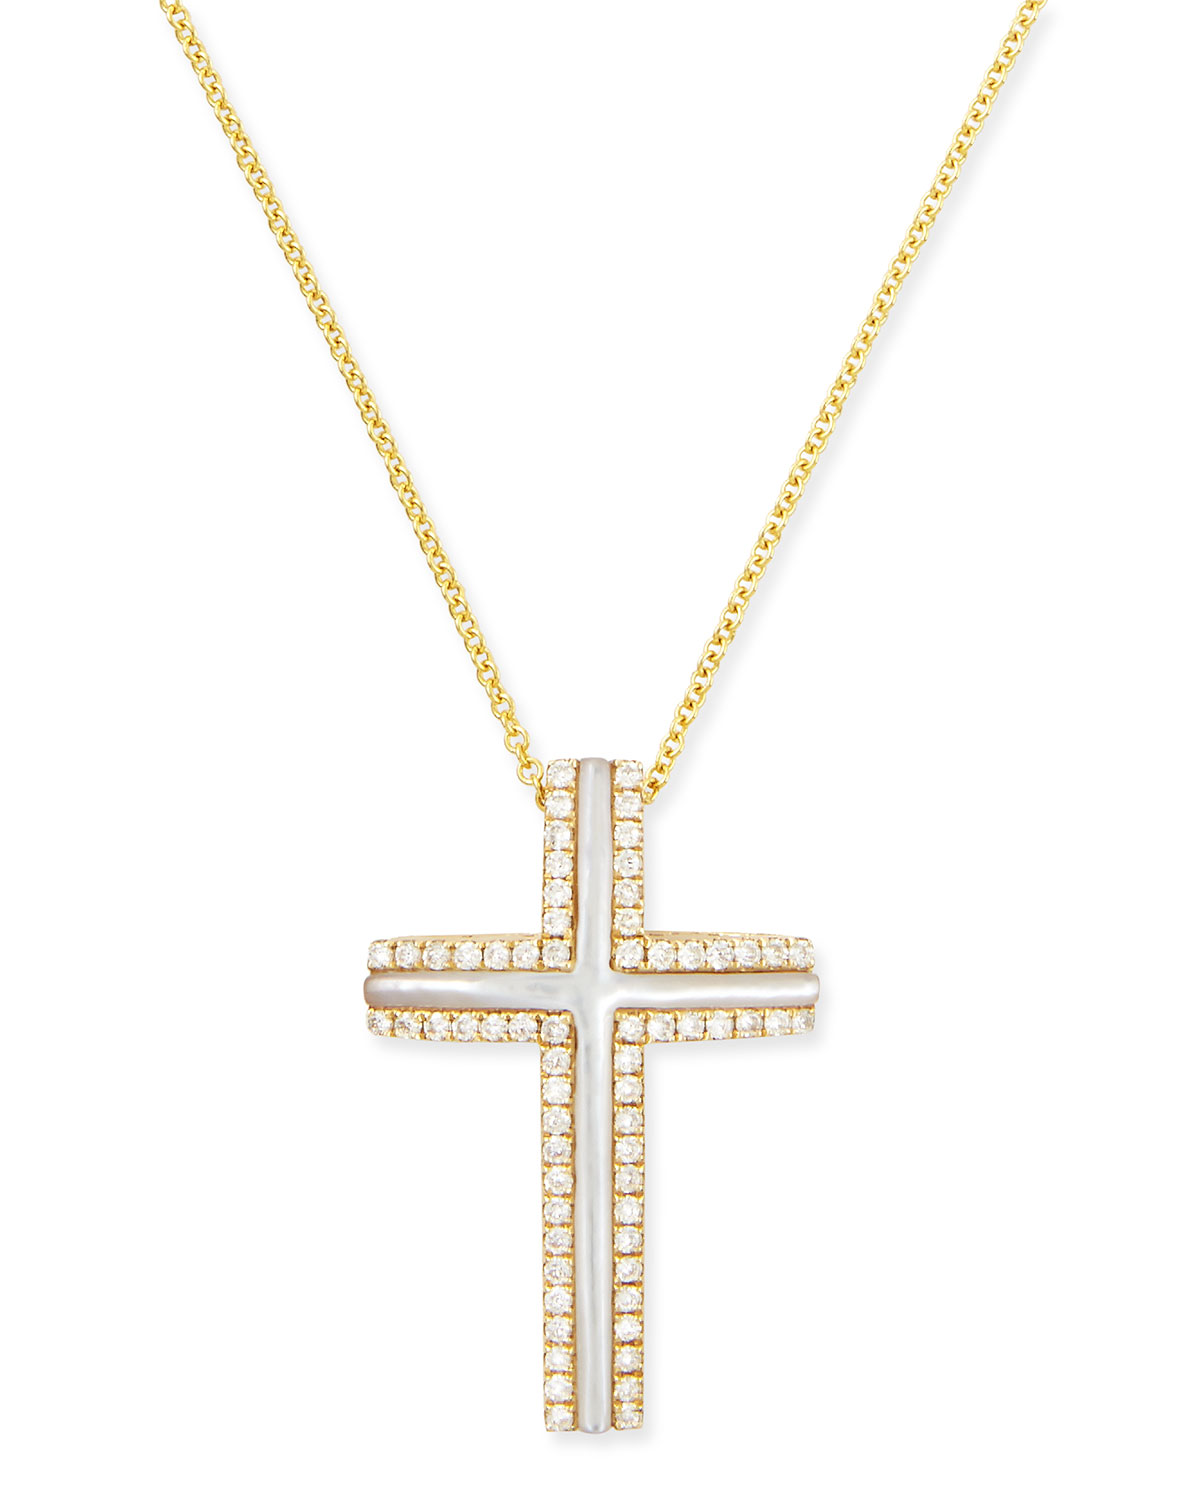 FREDERIC SAGE LARGE 18K YELLOW GOLD CROSS NECKLACE WITH MOTHER-OF-PEARL & DIAMONDS